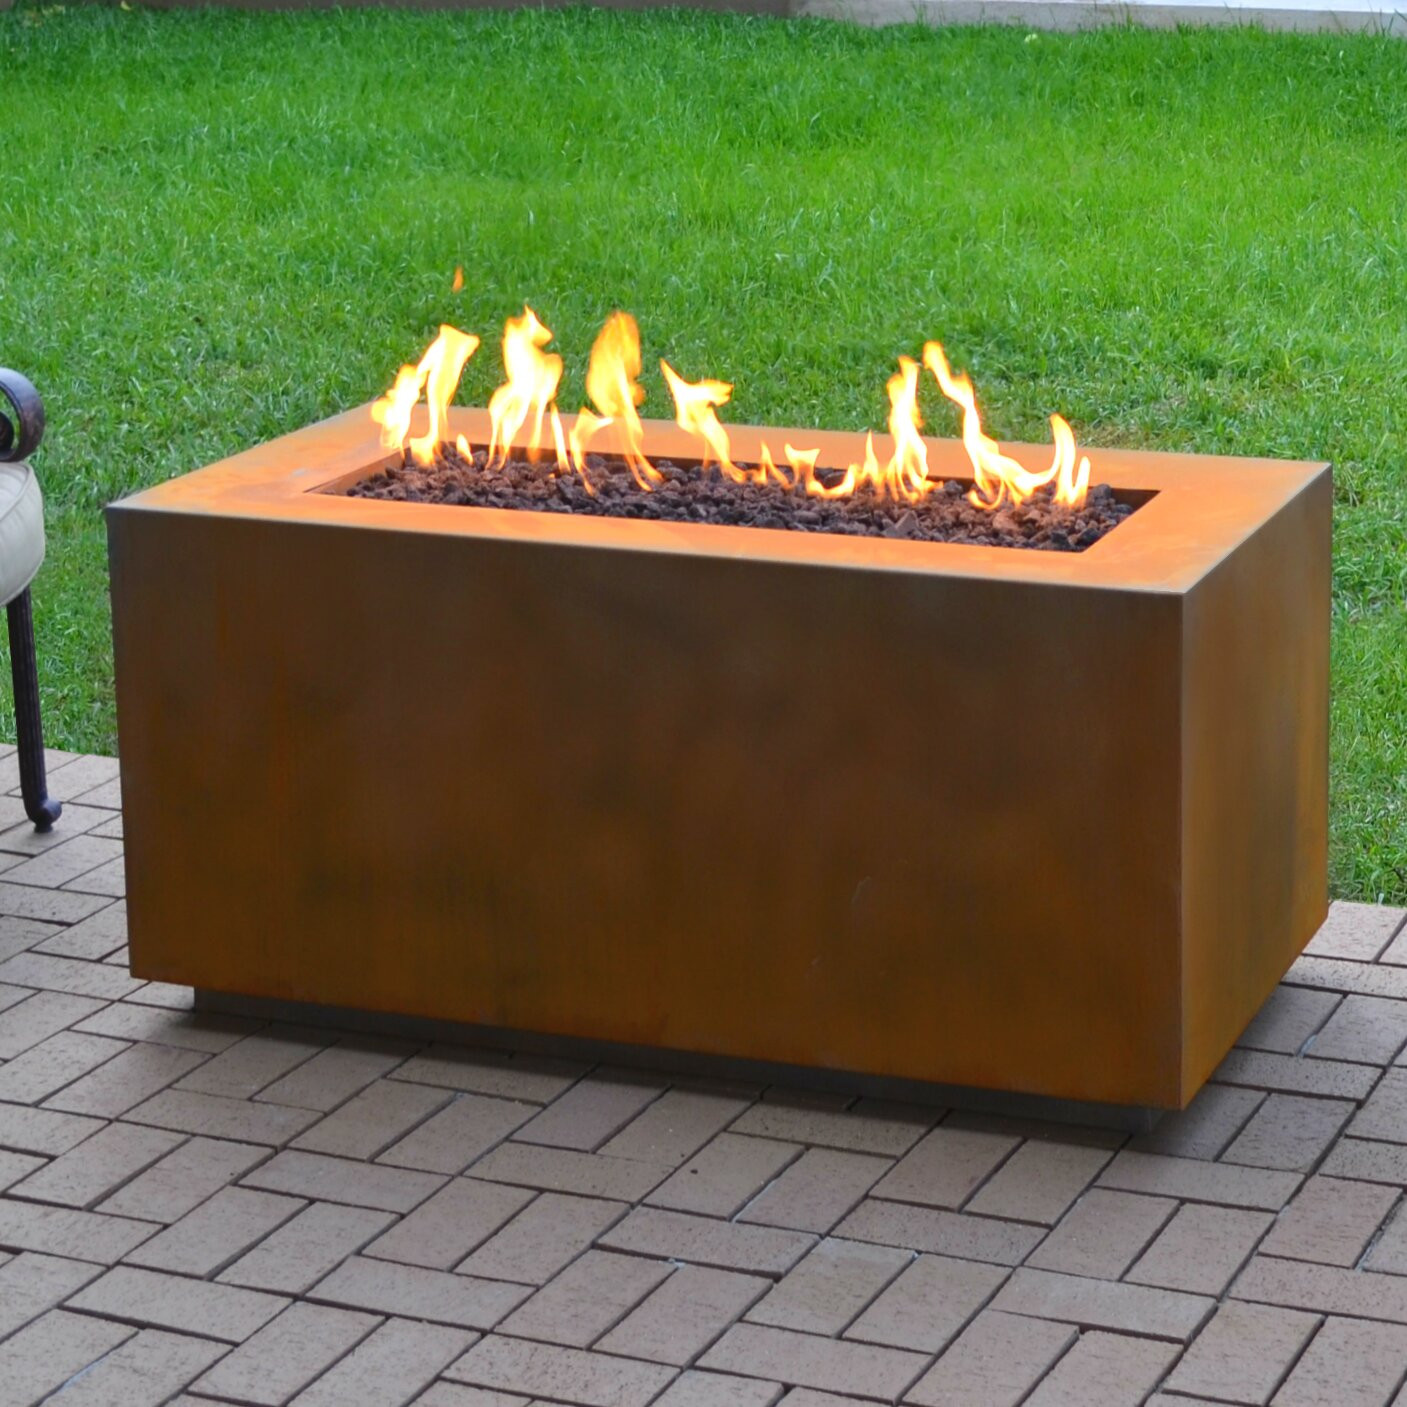 Propane Fire Pit Table  The Outdoor Plus Corten Steel Propane Fire Pit Table